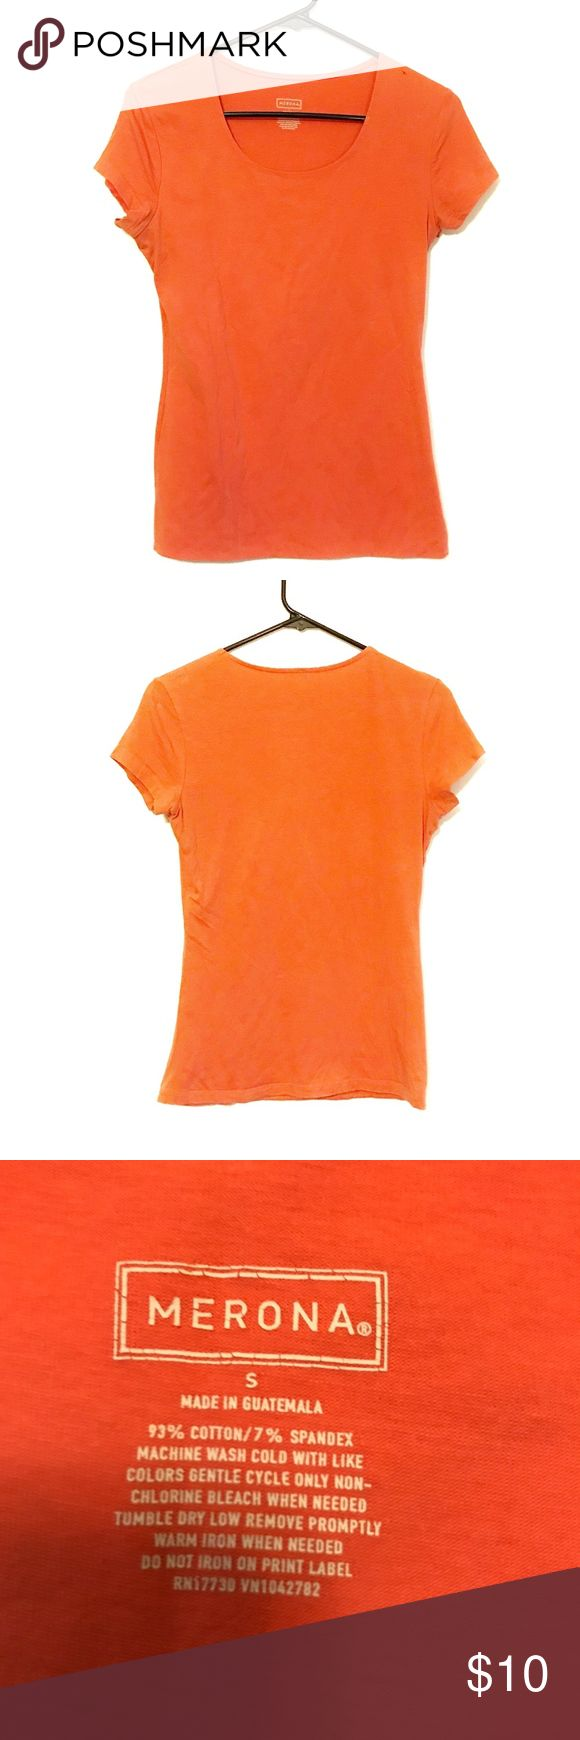 Scoopneck Orange short sleeve tee Like new women's orange Merona scoop neck tee. Size small. Fits really nicely and is very soft on the skin.   Measurements (inches):     ~Bust: 15     ~Shoulder: 15     ~Length: 24.5  *all measurements are taken with the item laying flat*   I am always open to offers.  Bundle your likes for a discount. Merona Tops Tees - Short Sleeve